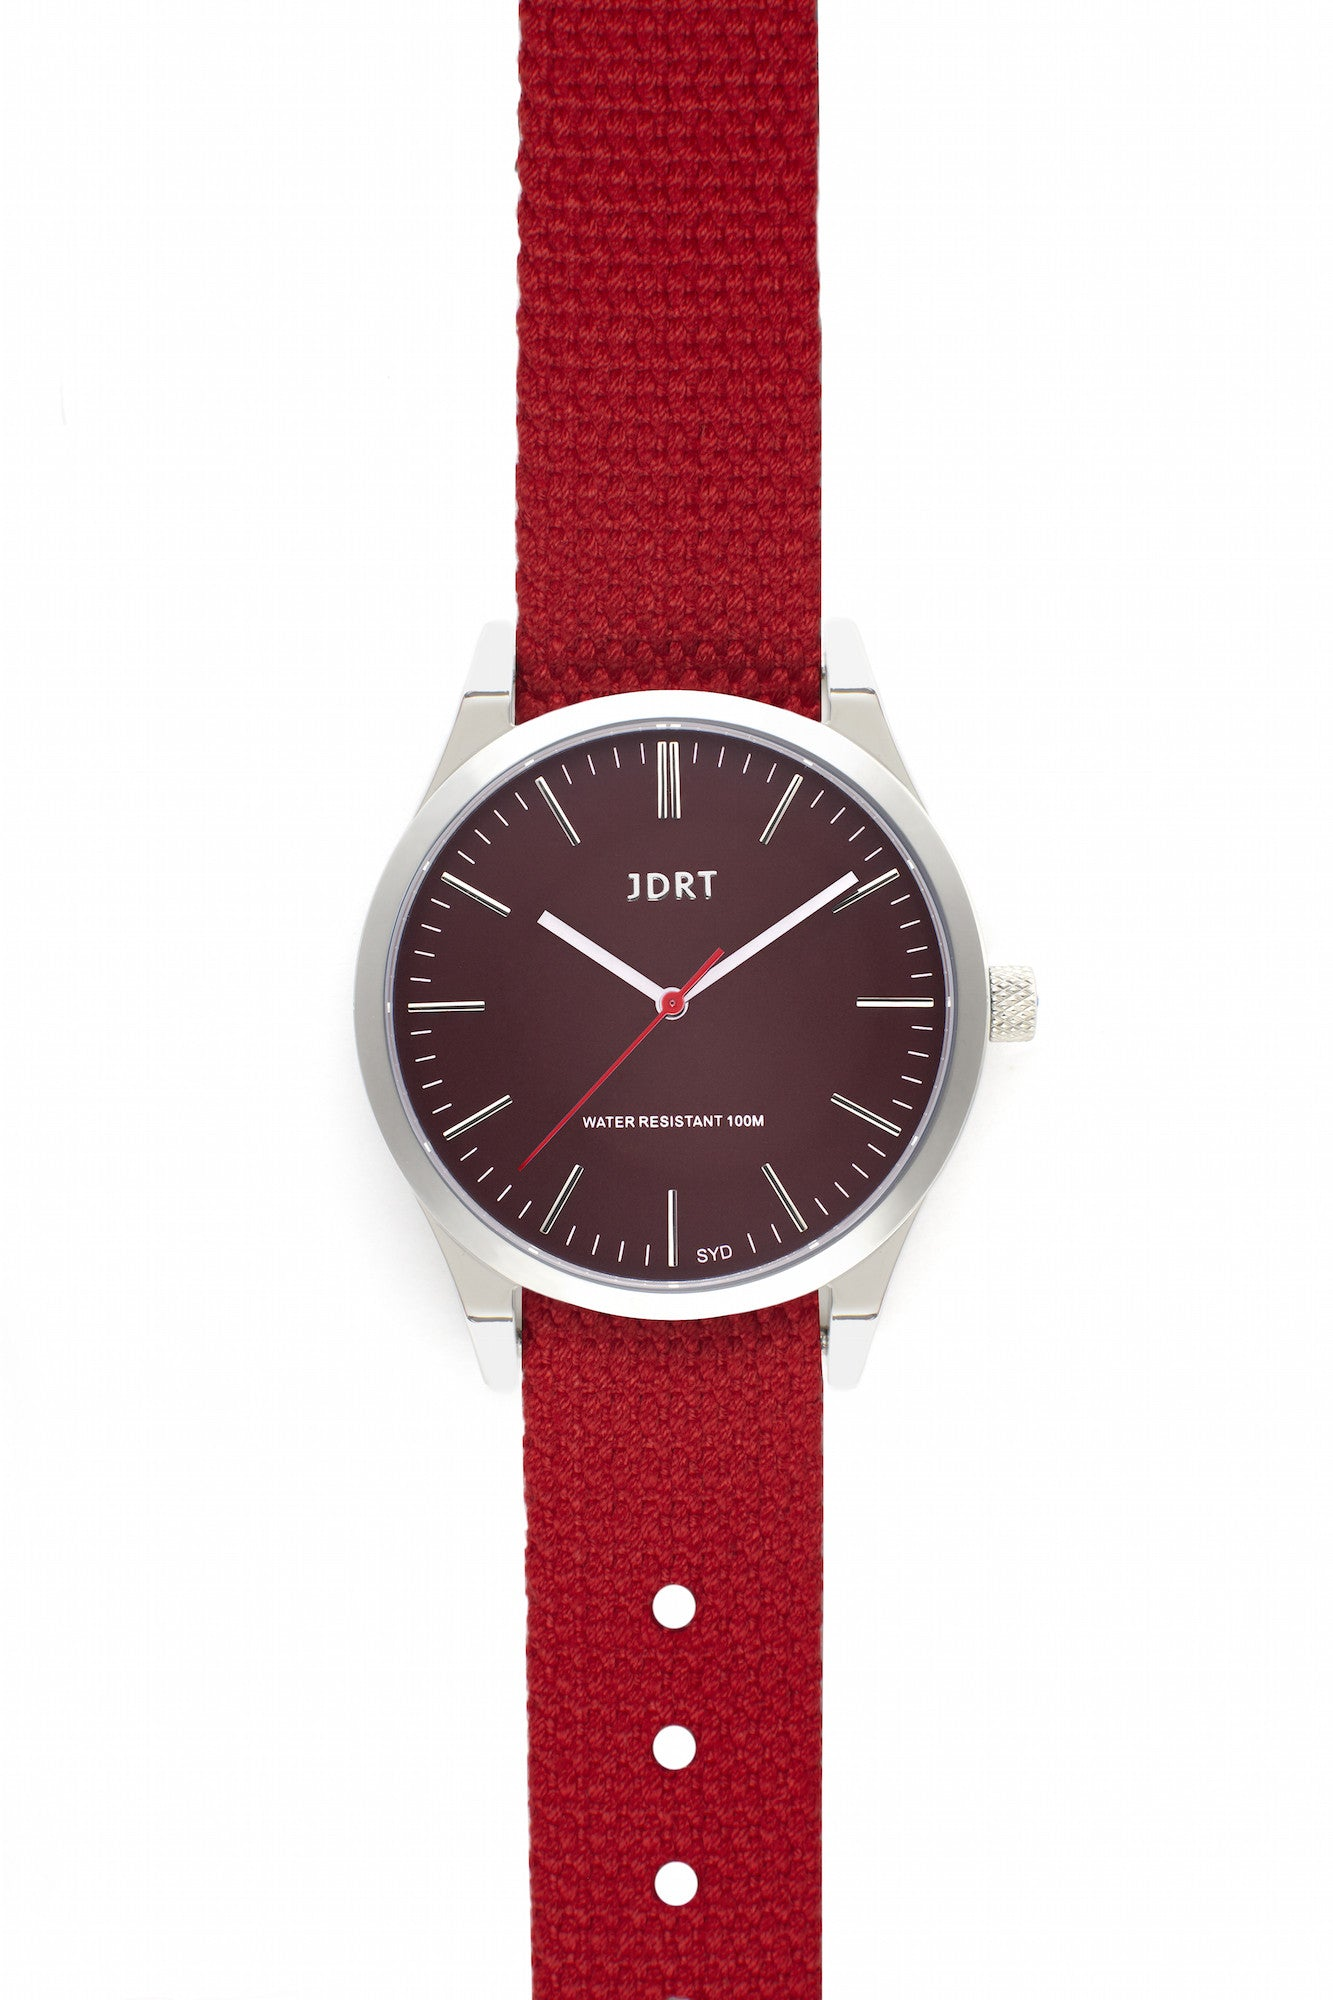 Oxblood Face with Chilli Canvas Watch Band